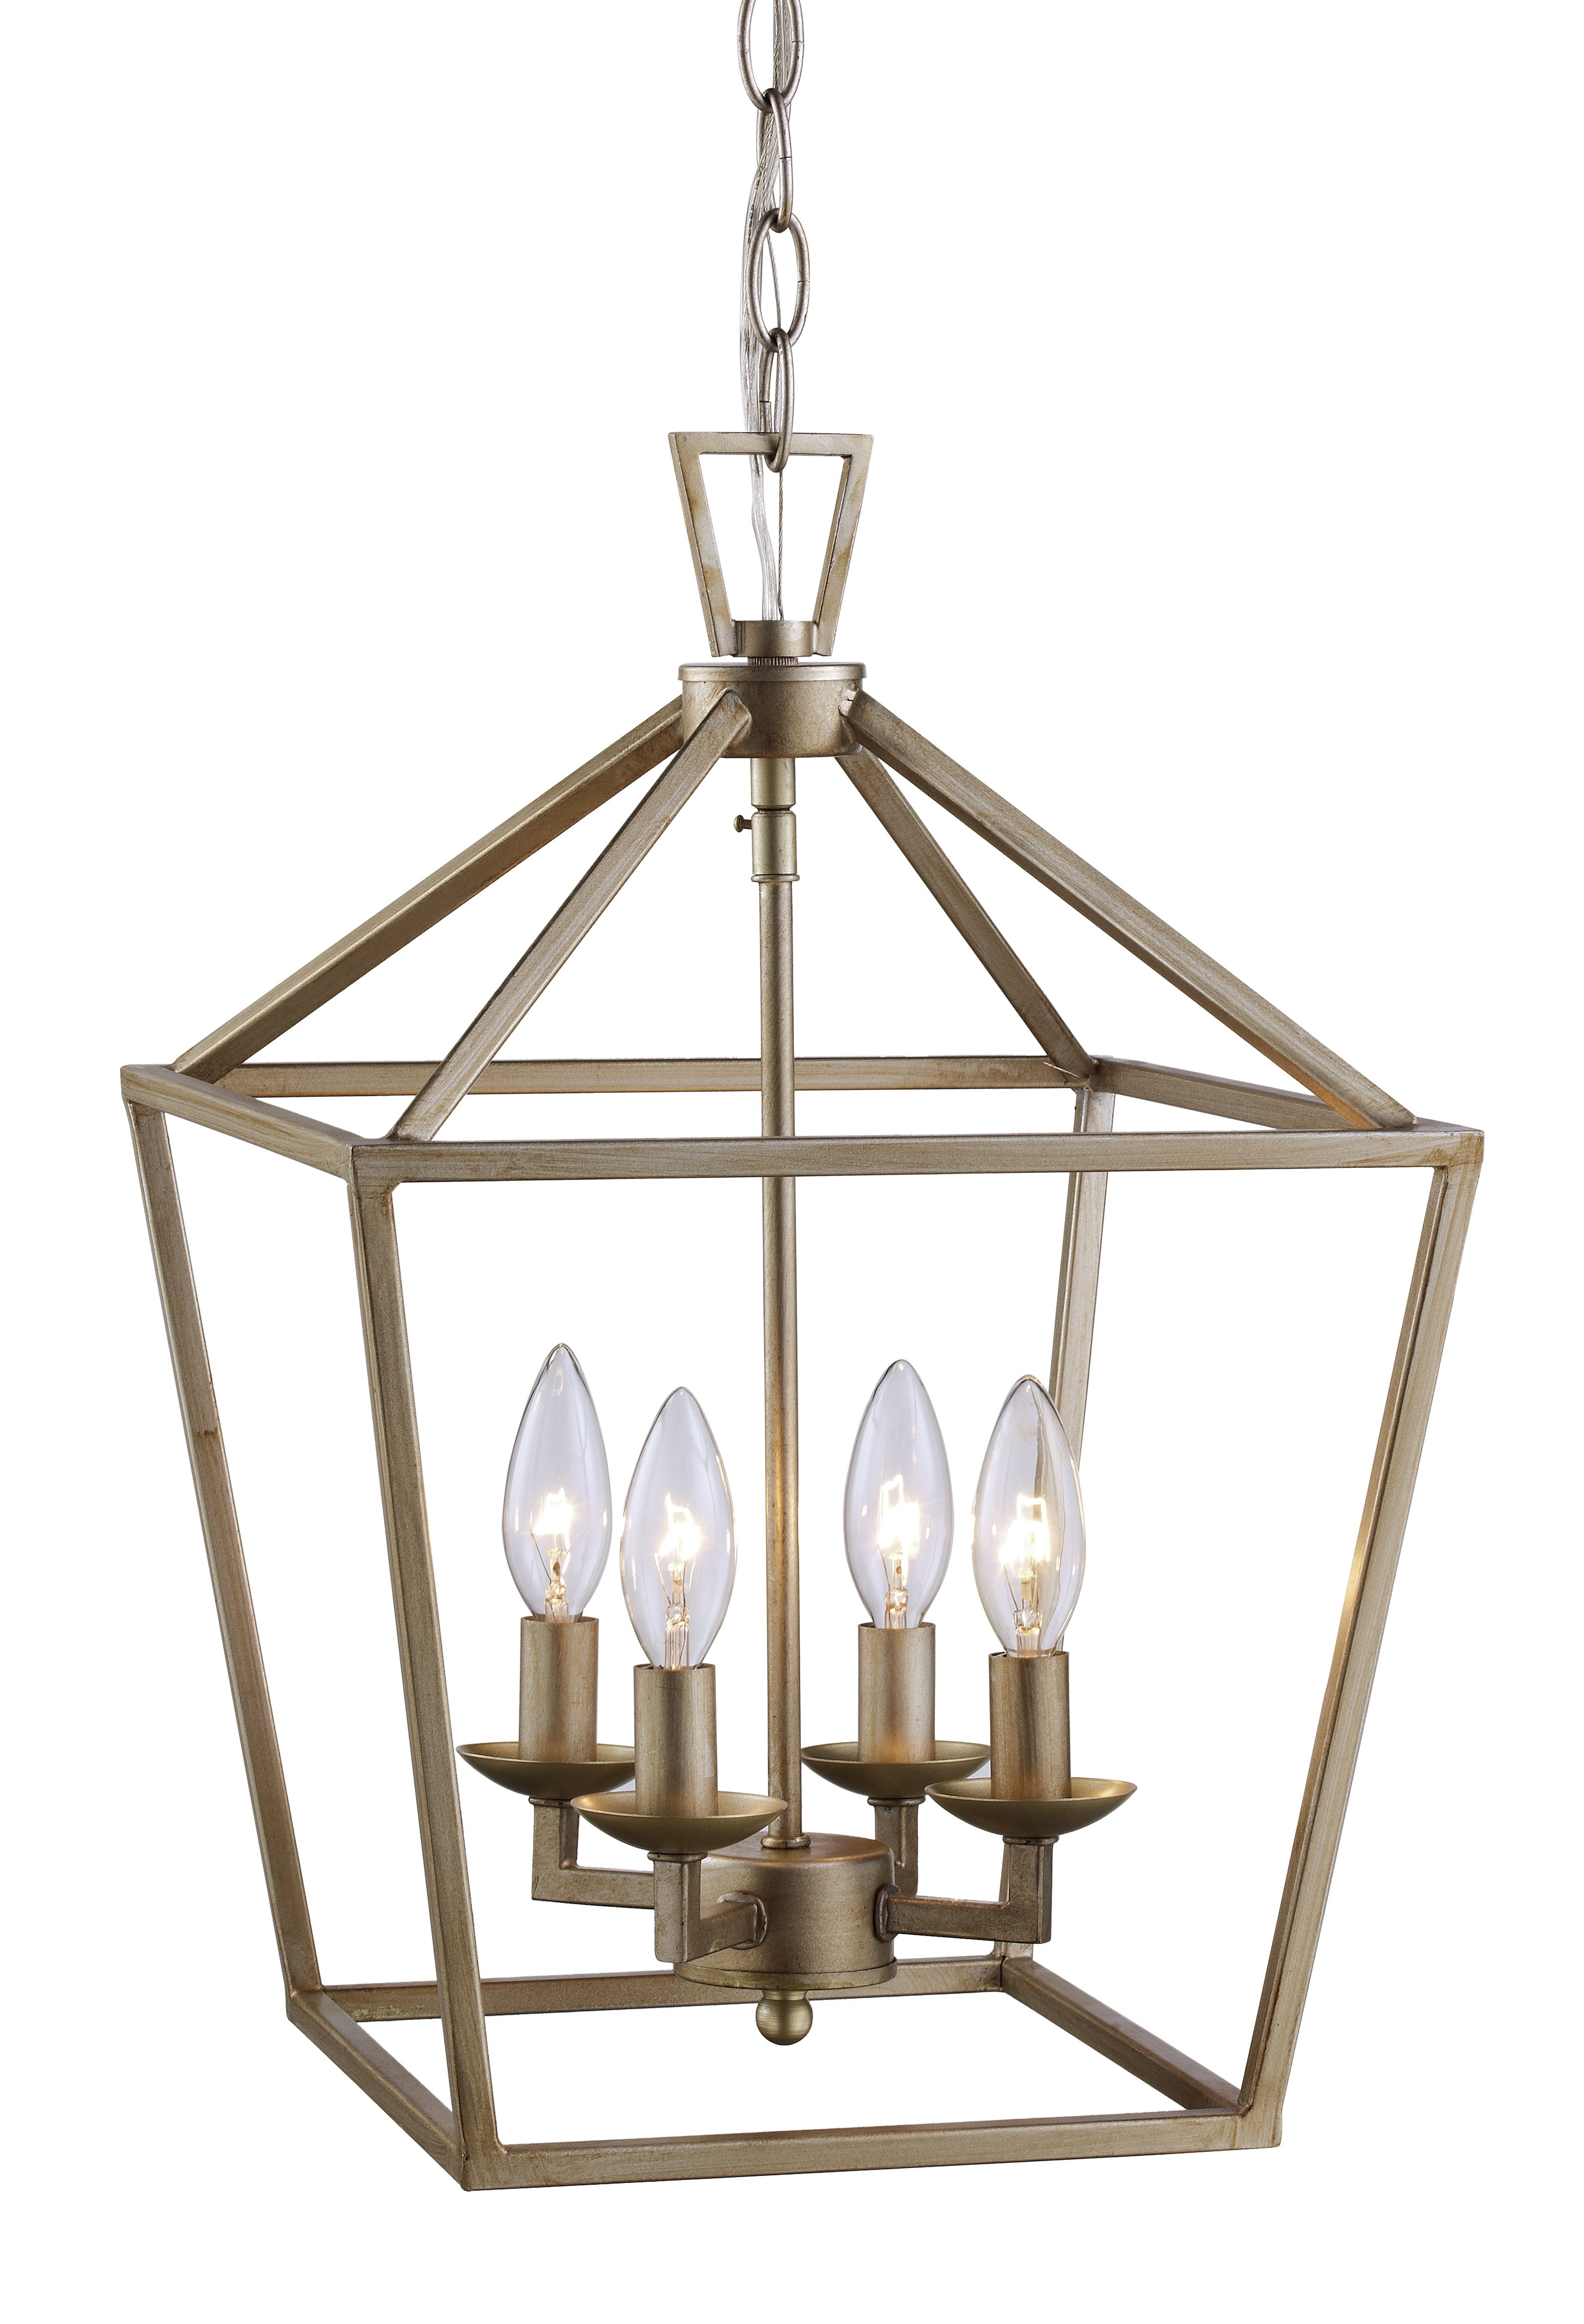 Carmen 6 Light Lantern Geometric Pendants Throughout Best And Newest Laurel Foundry Modern Farmhouse Carmen 4 Light Lantern Geometric Pendant (View 17 of 20)